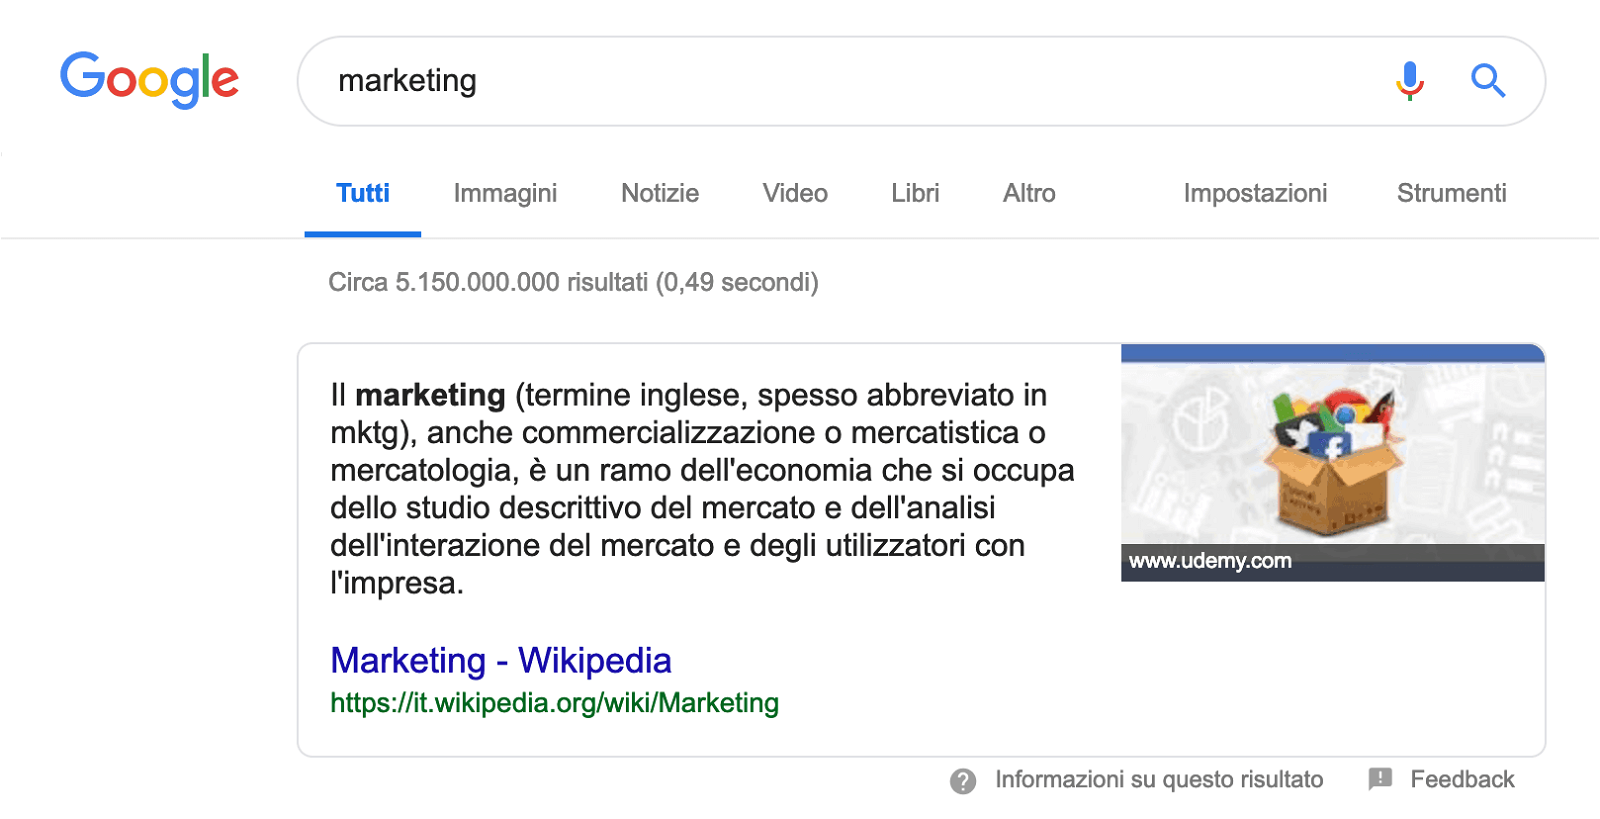 Featured Snippet Marketing